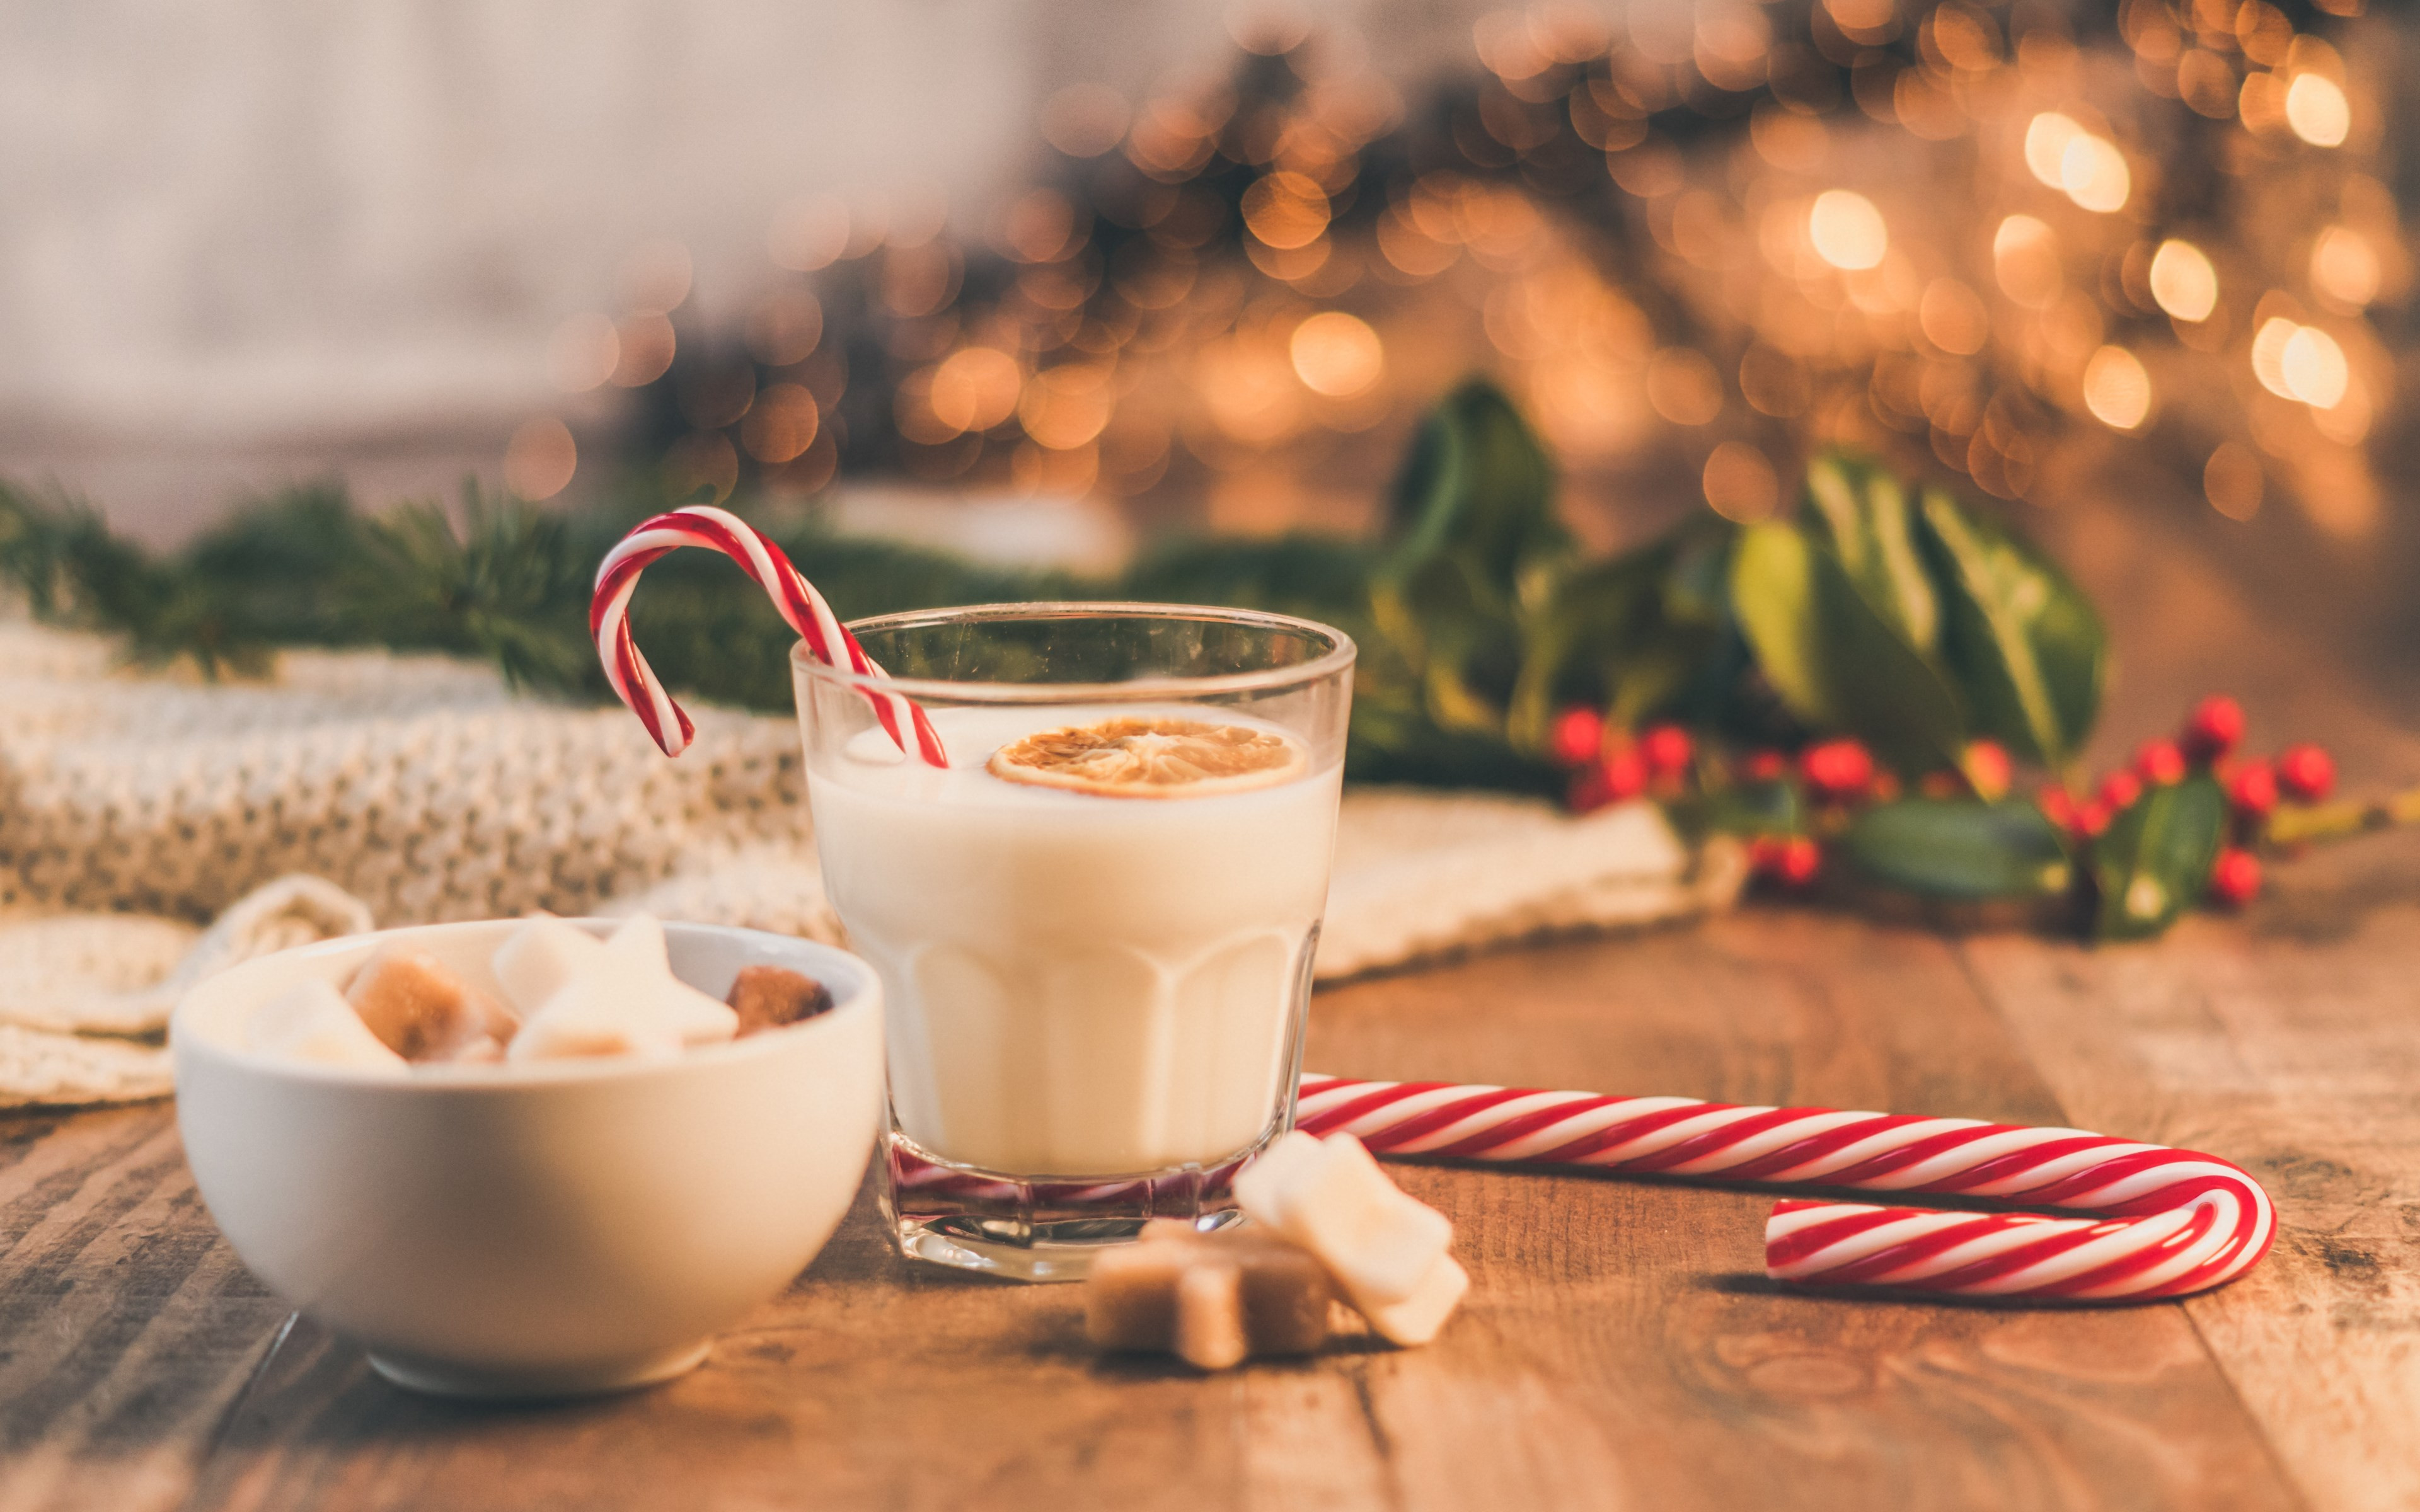 Seasonal Christmas sweets and cup of milk wallpaper 3840x2400